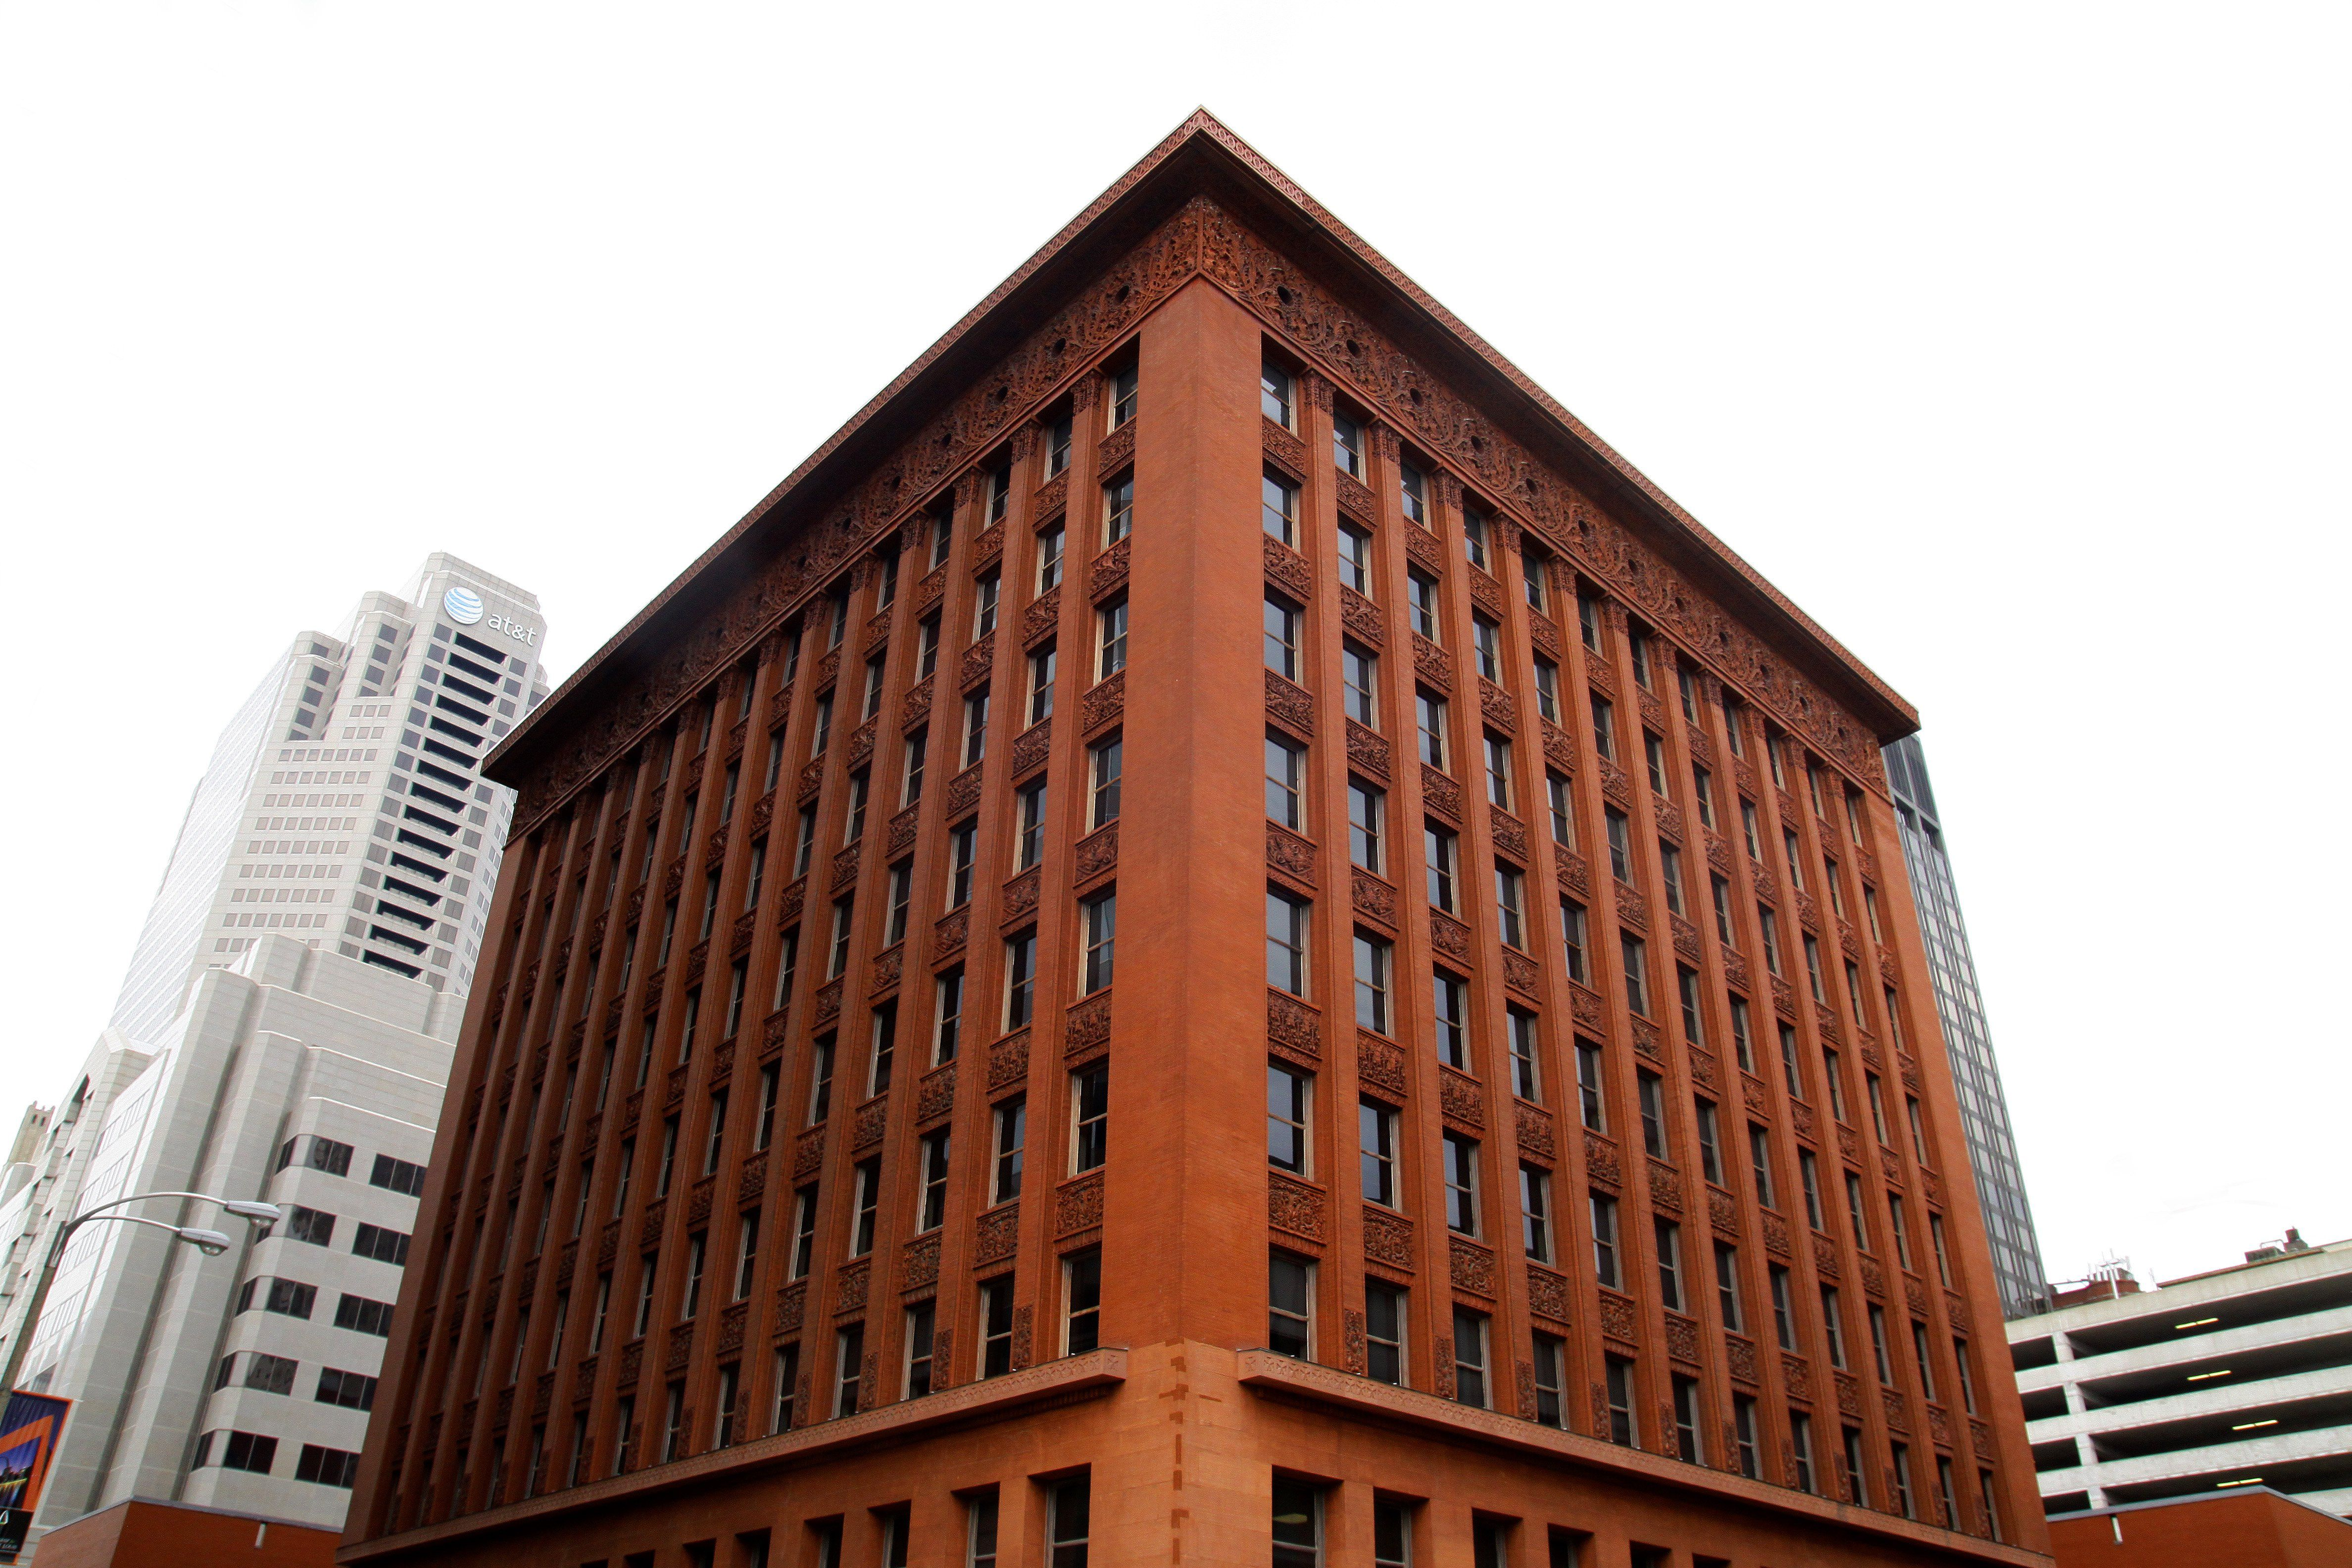 The Wainwright Building in St. Louis, Missouri.